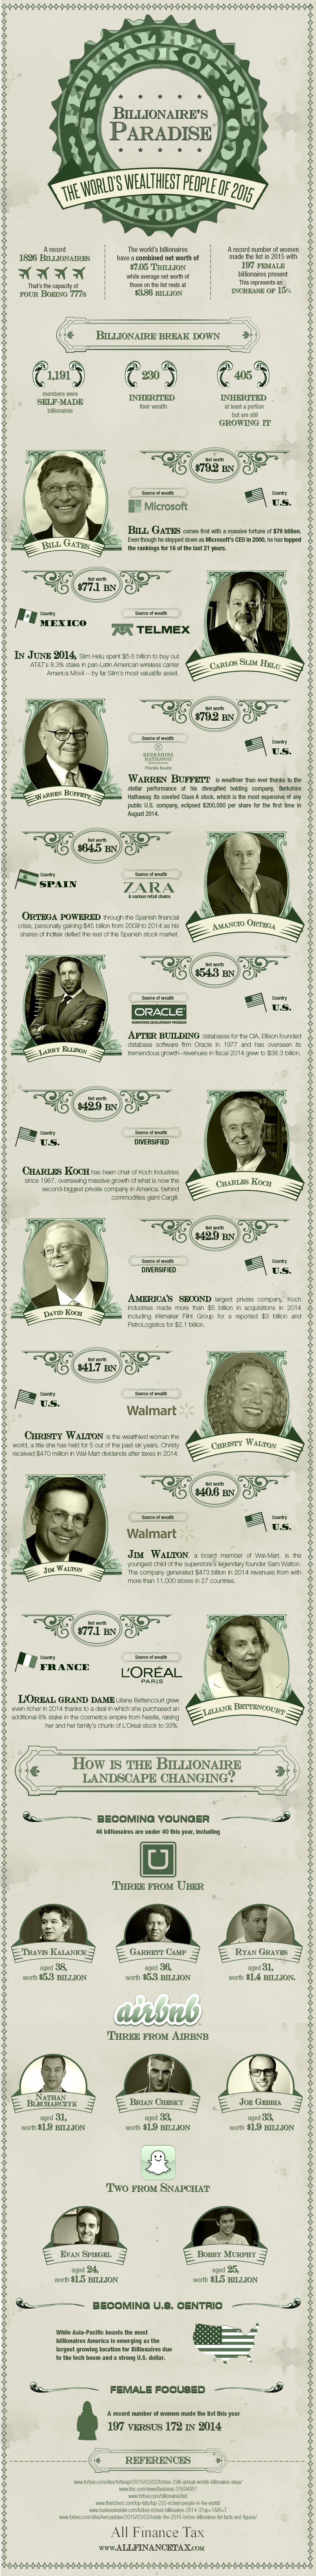 The World's Wealthiest People of 2015